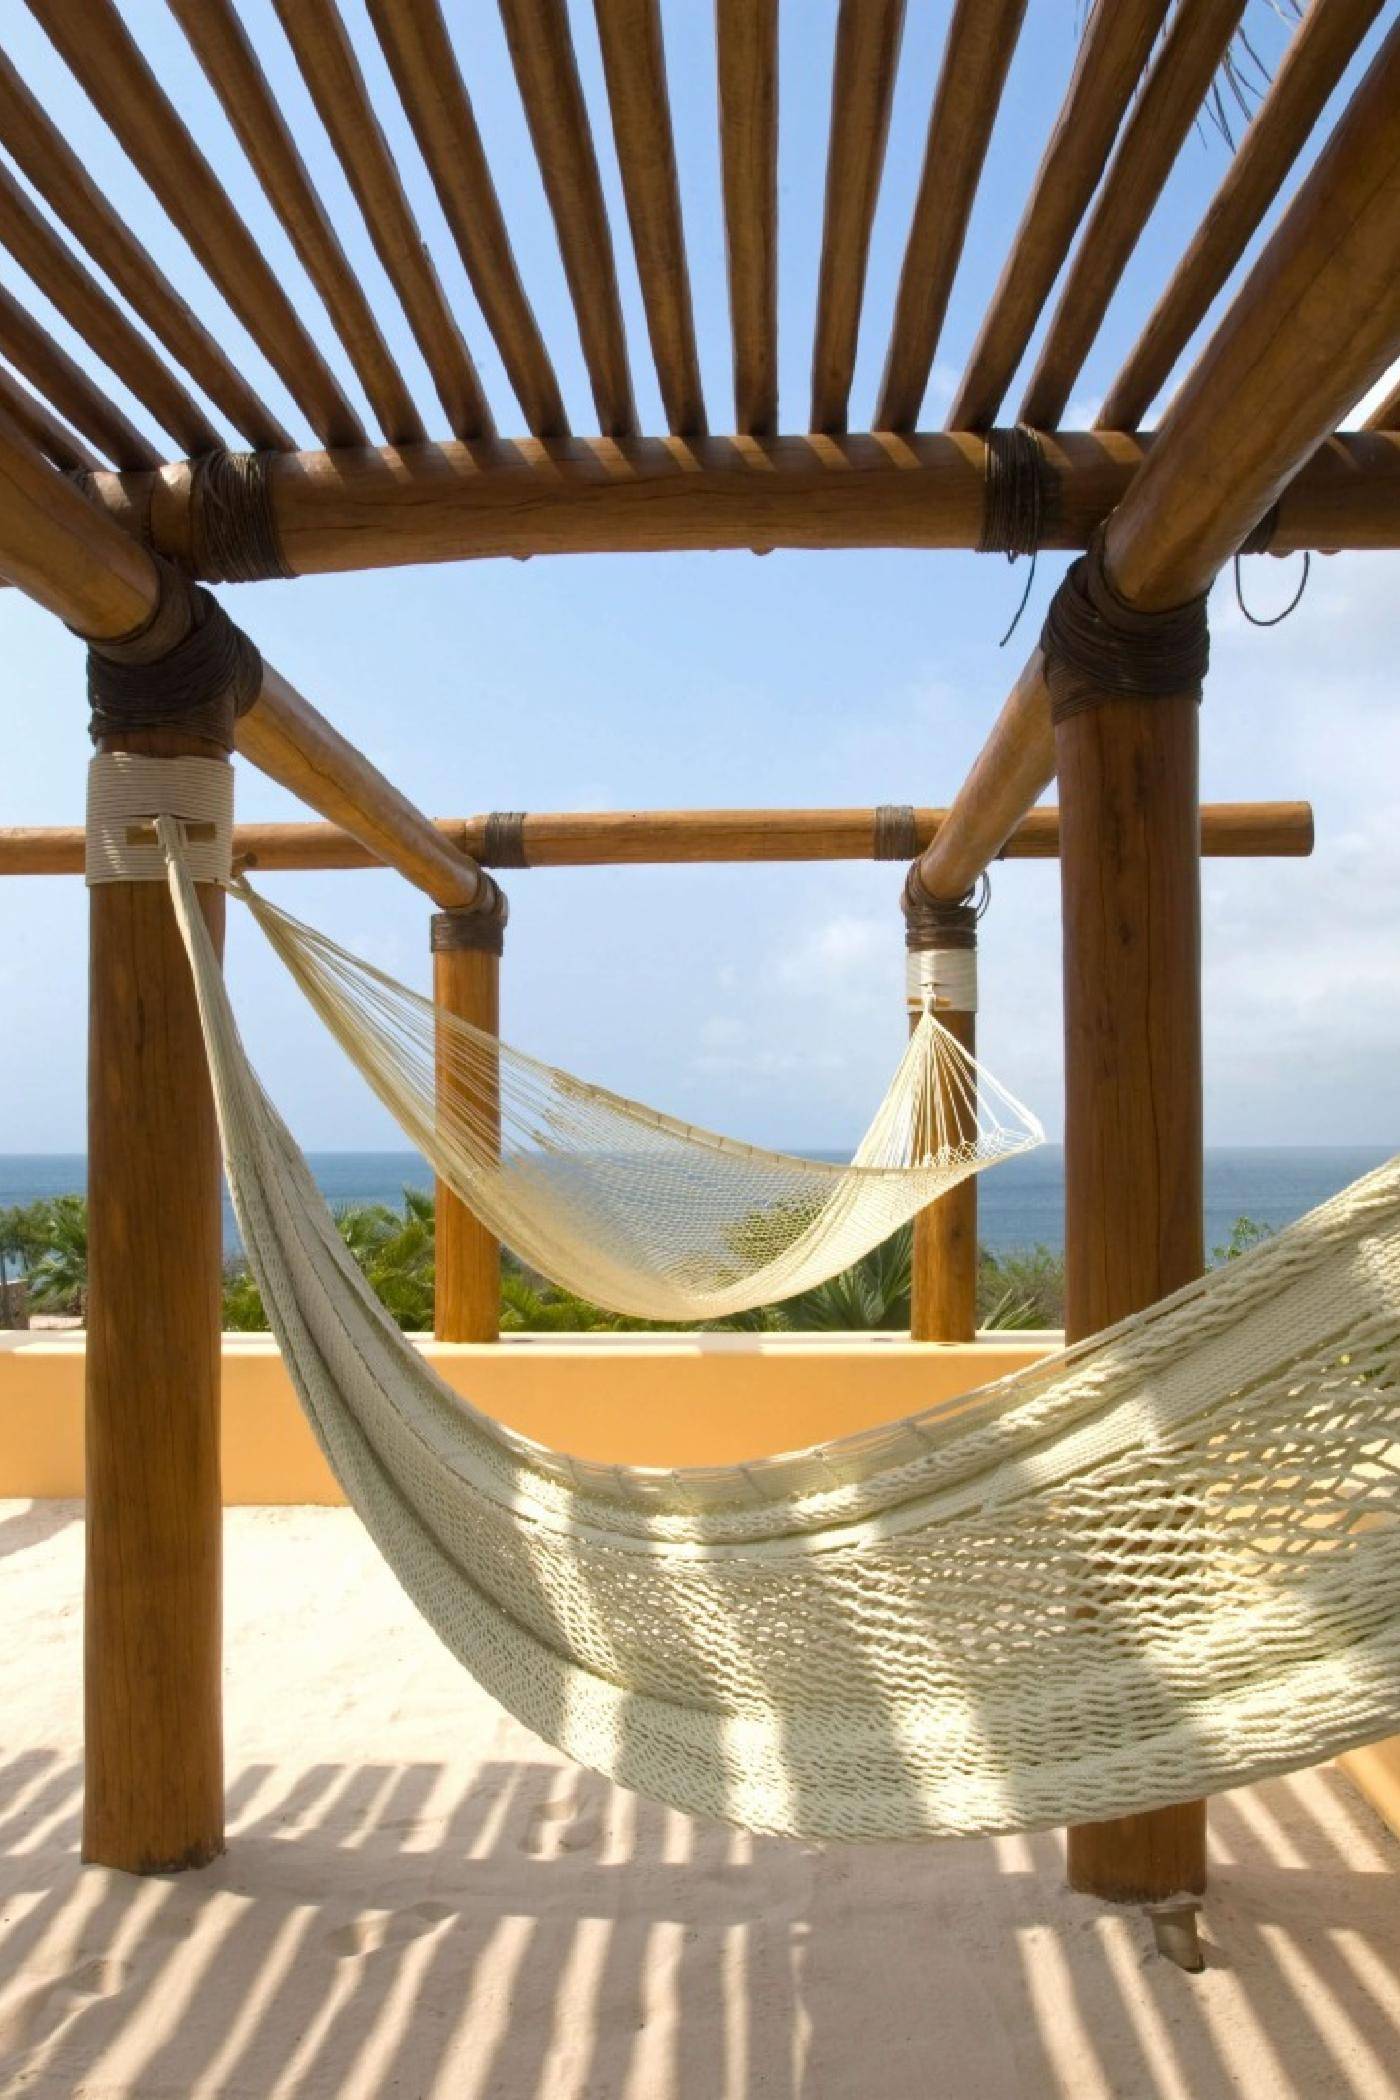 There is no shortage of places to relax at Casa Querencia.